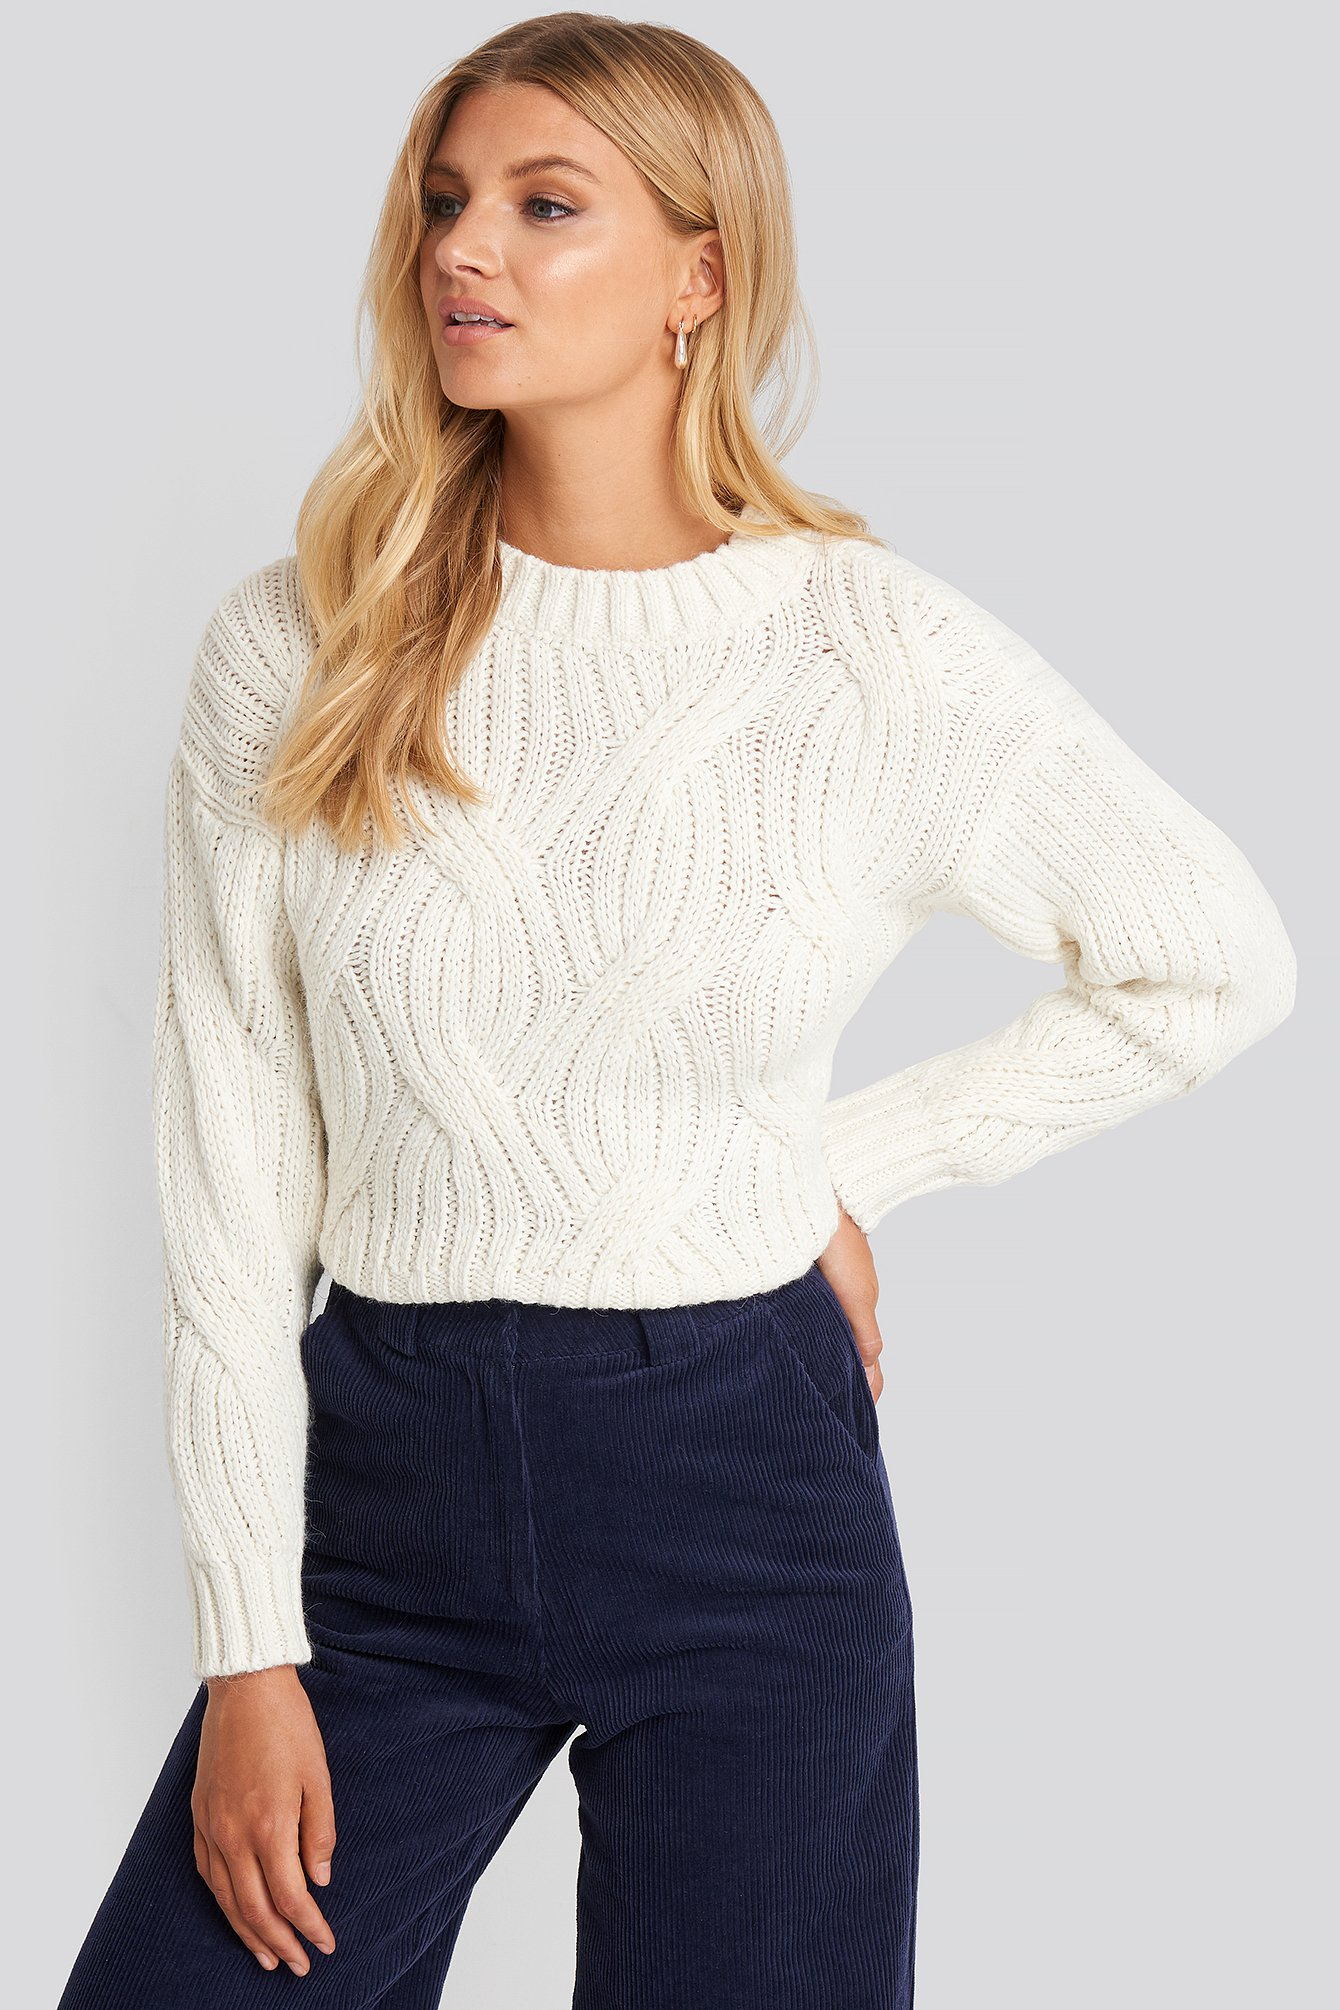 trendyol -  Yol Knit Detail Sweater - White